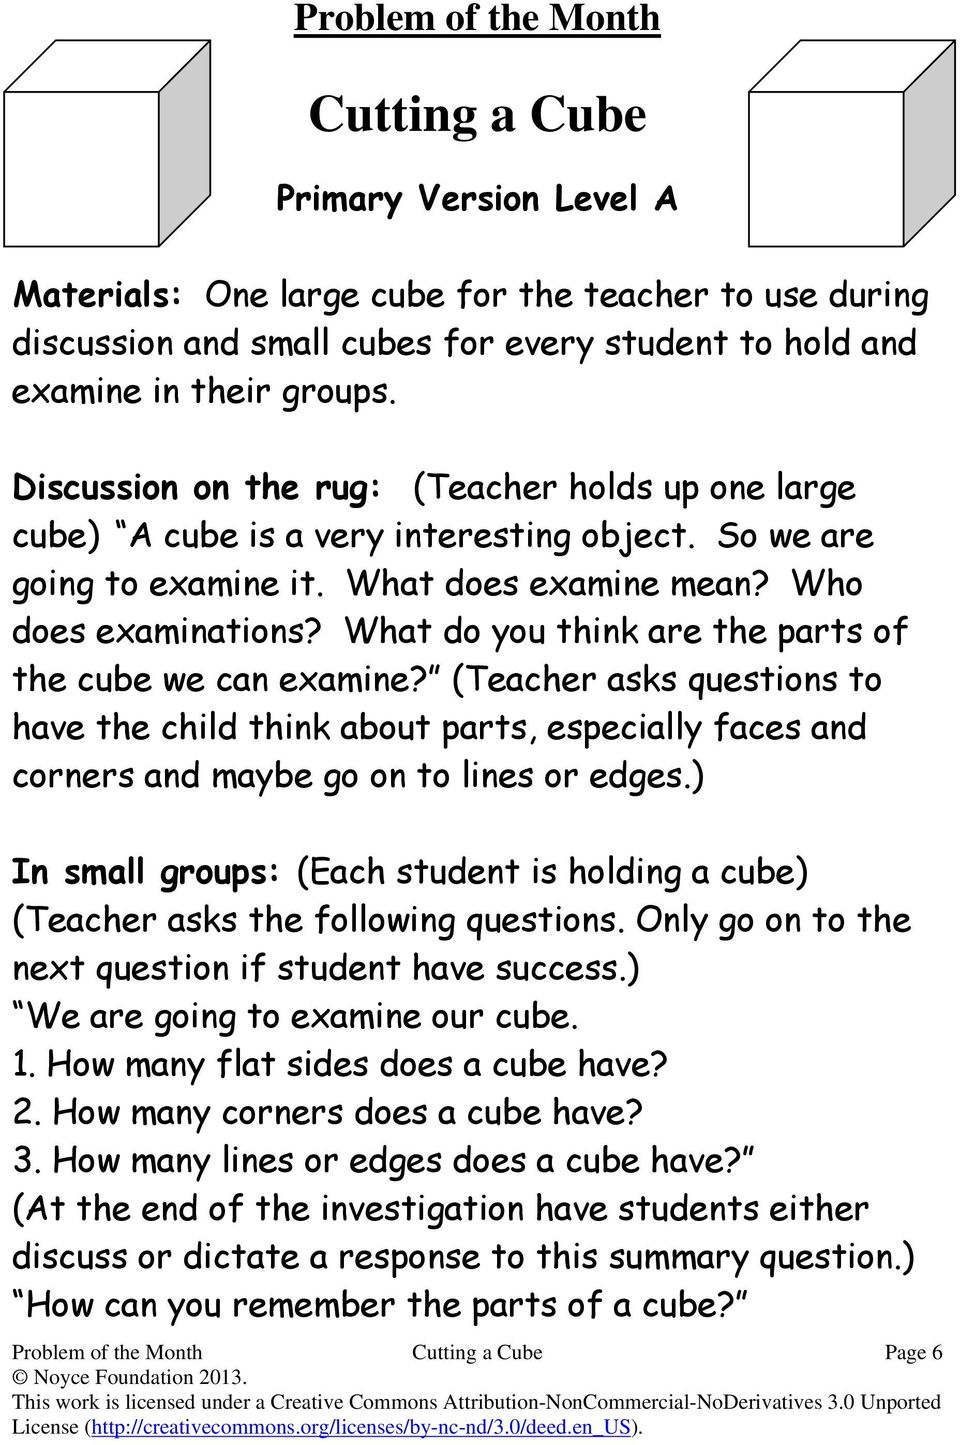 What do you think are the parts of the cube we can examine? (Teacher asks questions to have the child think about parts, especially faces and corners and maybe go on to lines or edges.